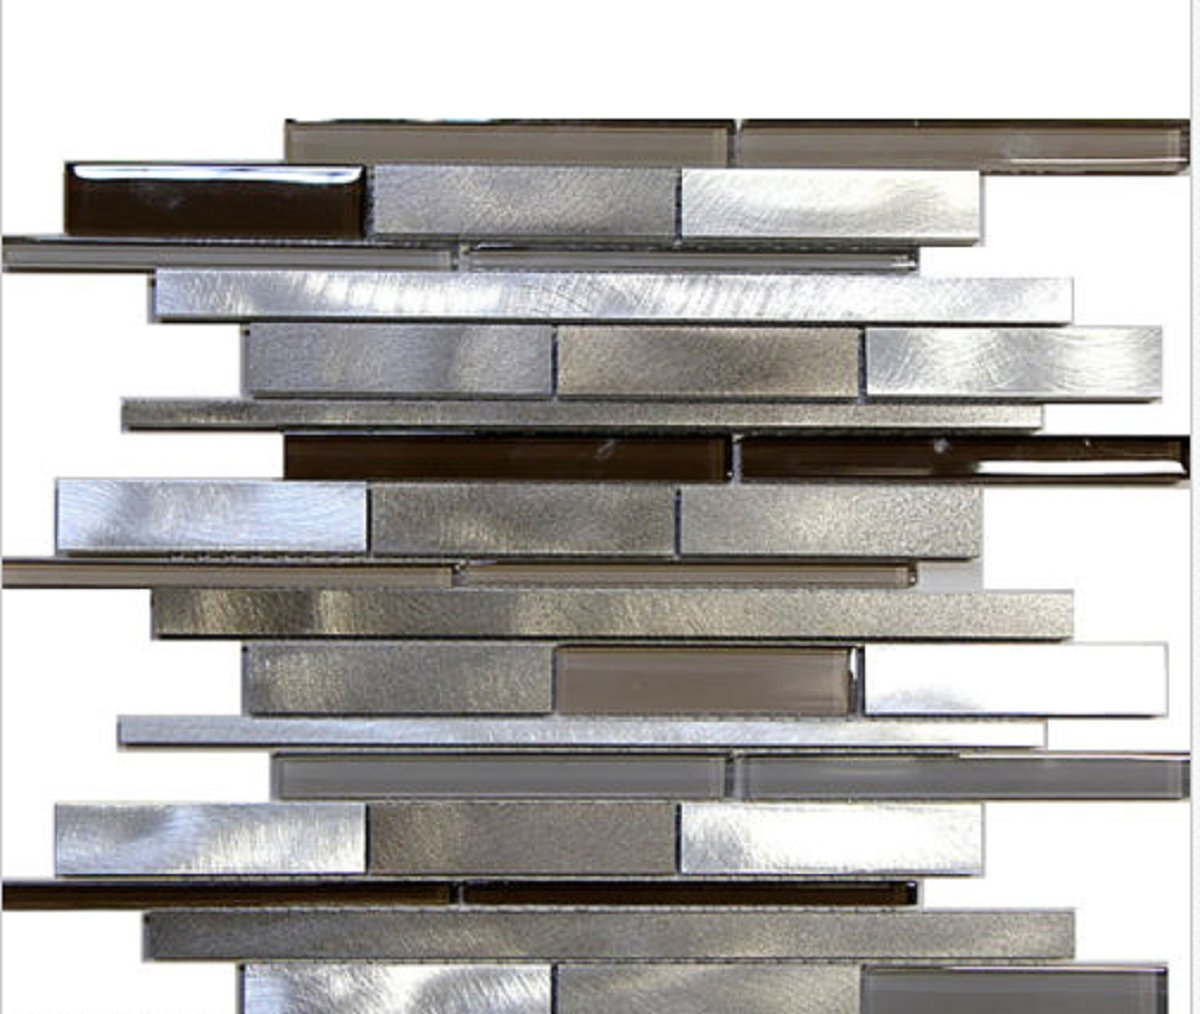 USA Premium Store 10 SF - Metal Stainless Steel Linear glass mosaic Tile Kitchen Backsplash Beige